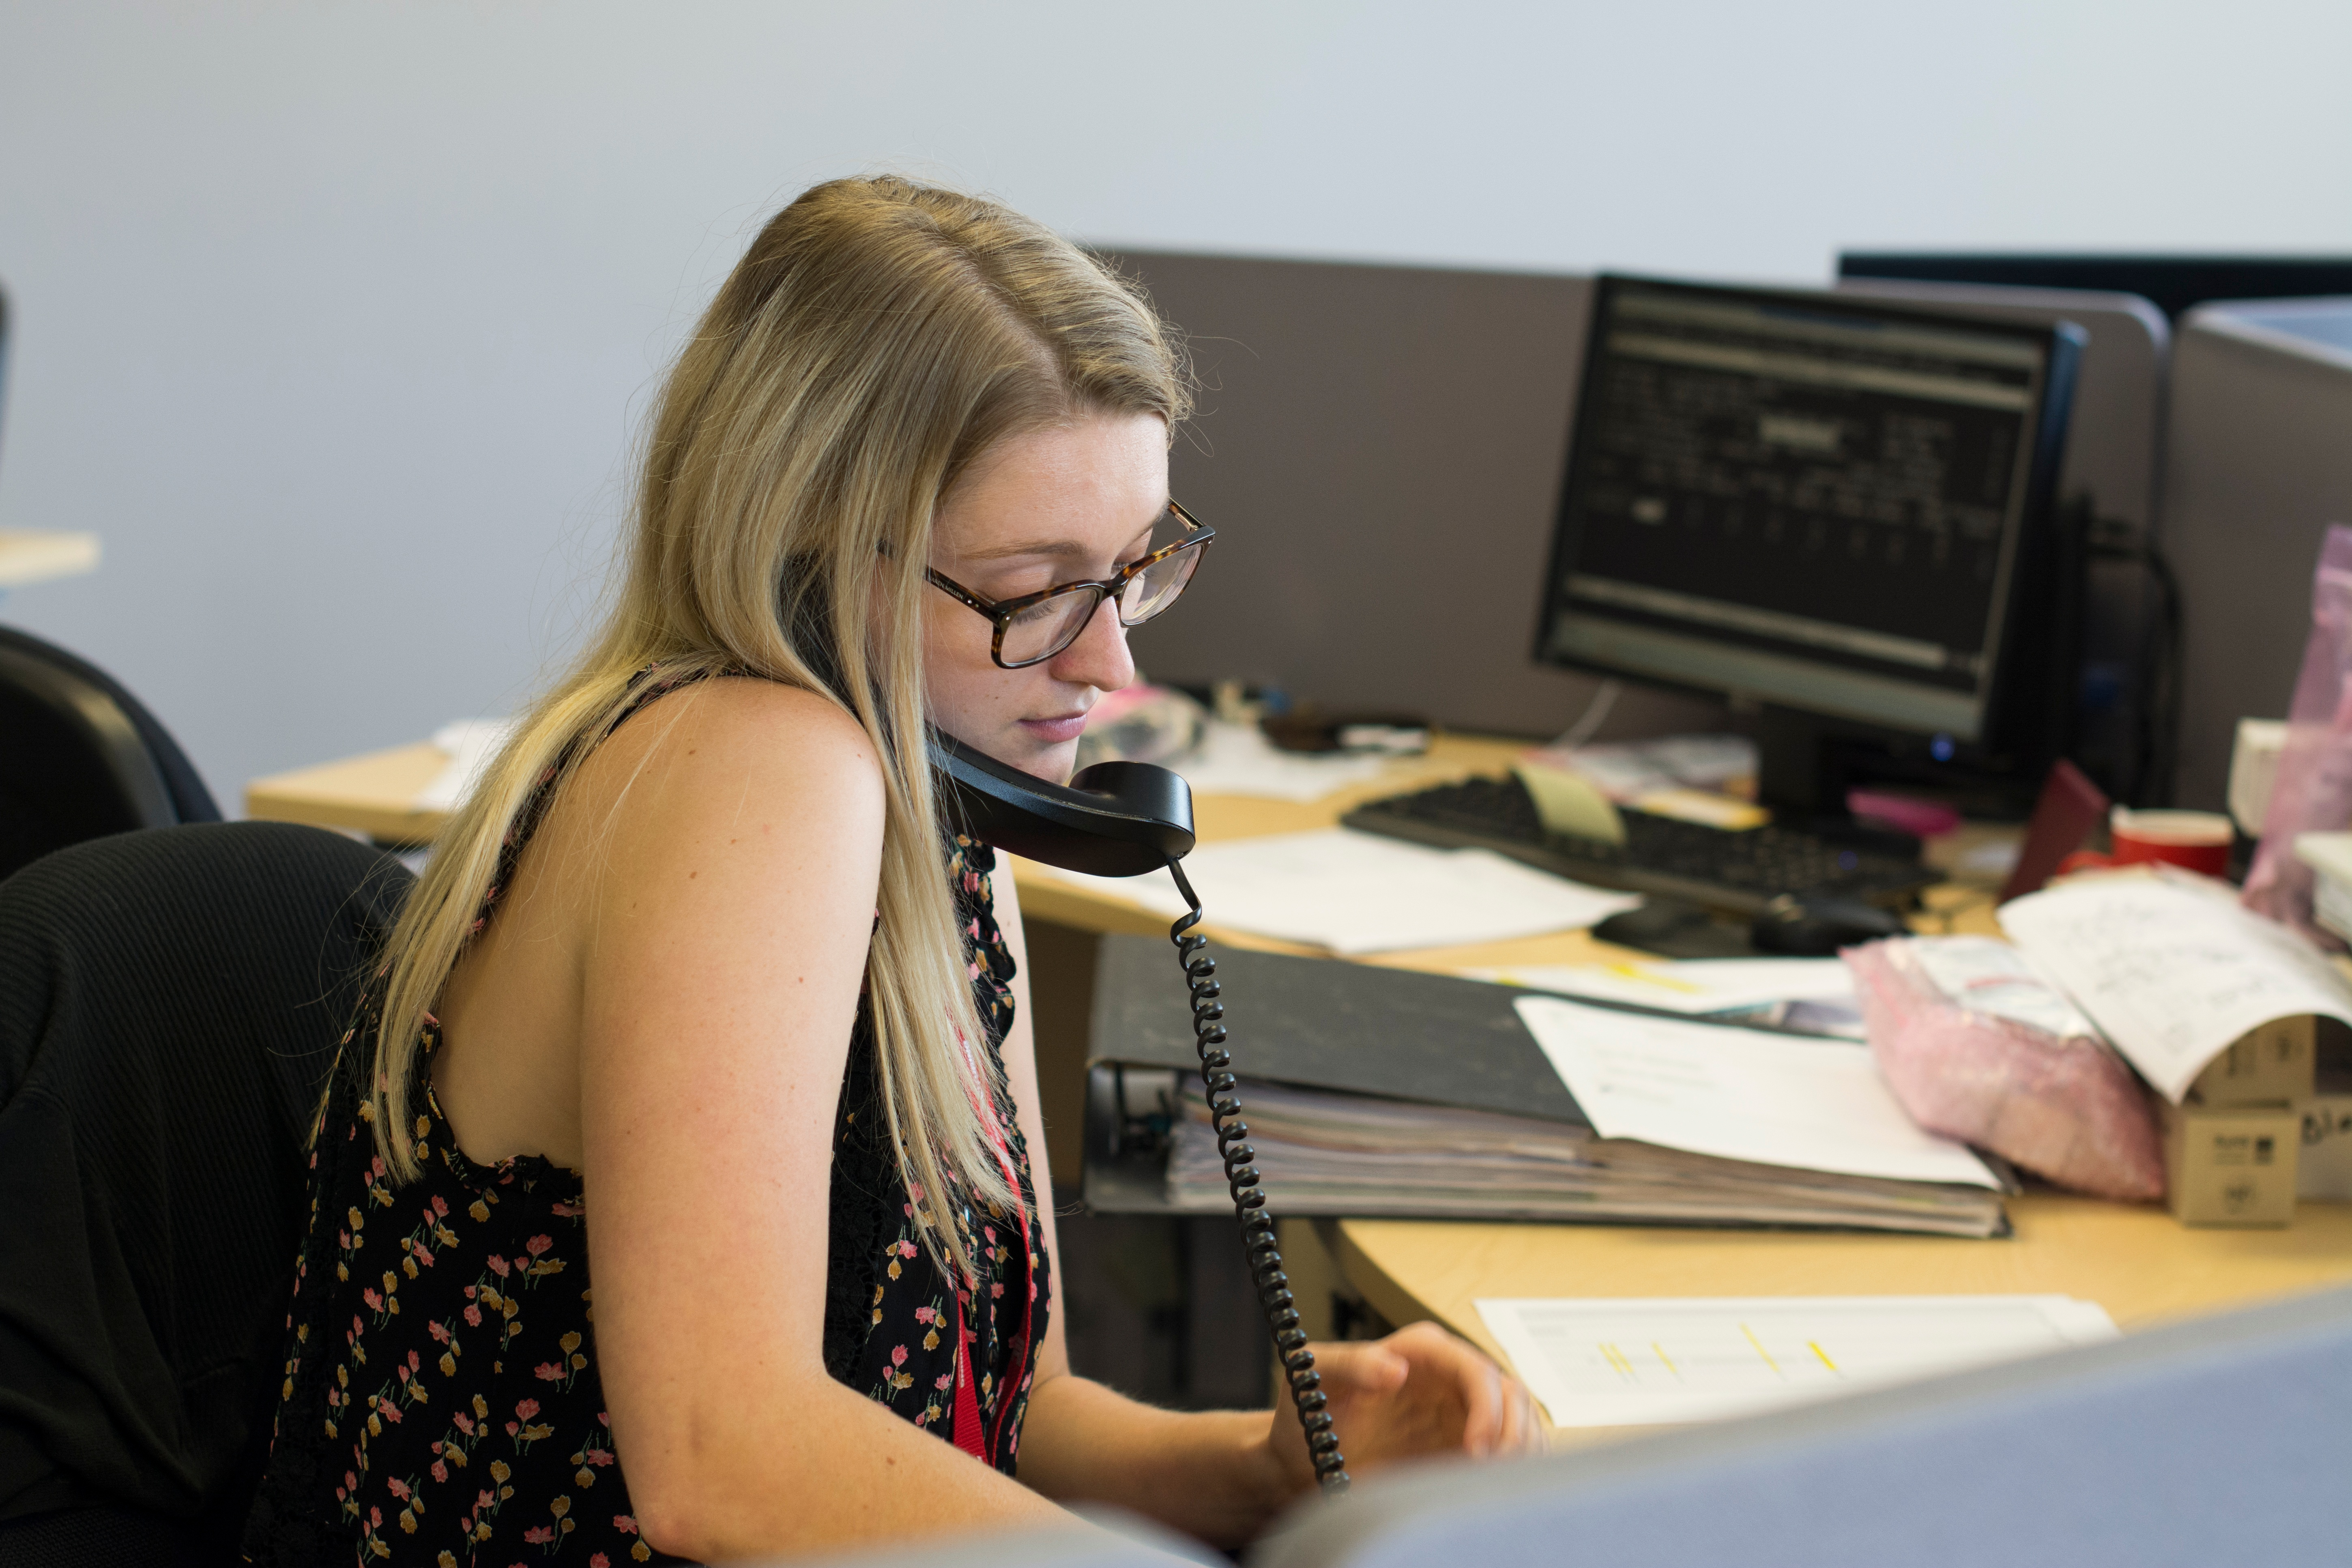 A commercial graduate sitting at her desk on the phone to a customer